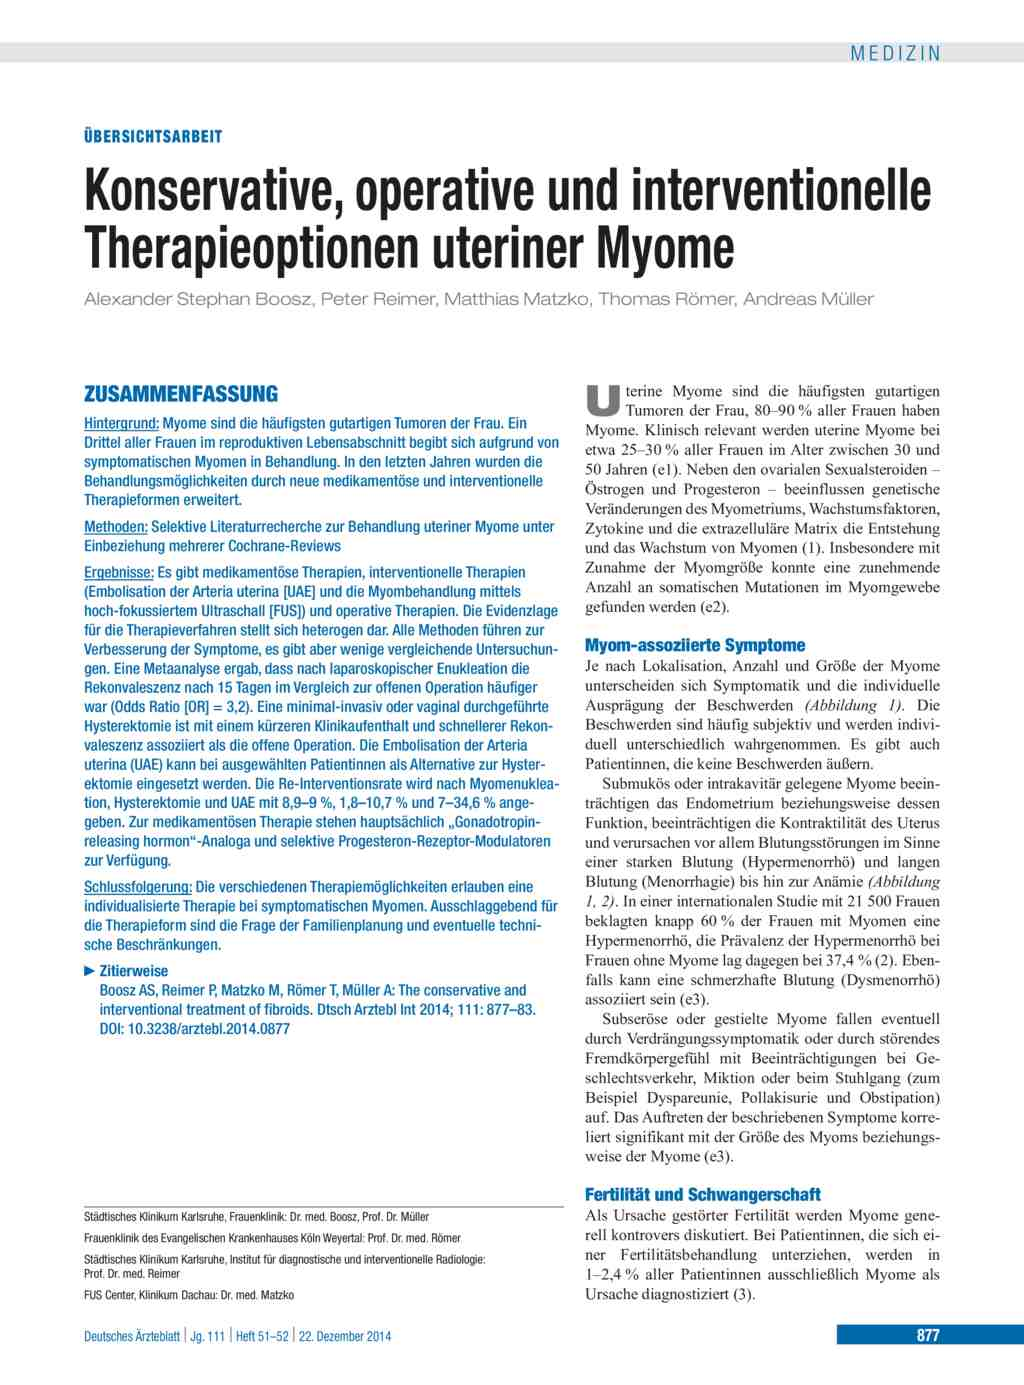 Konservative, operative und interventionelle Therapieoptionen uteriner Myome